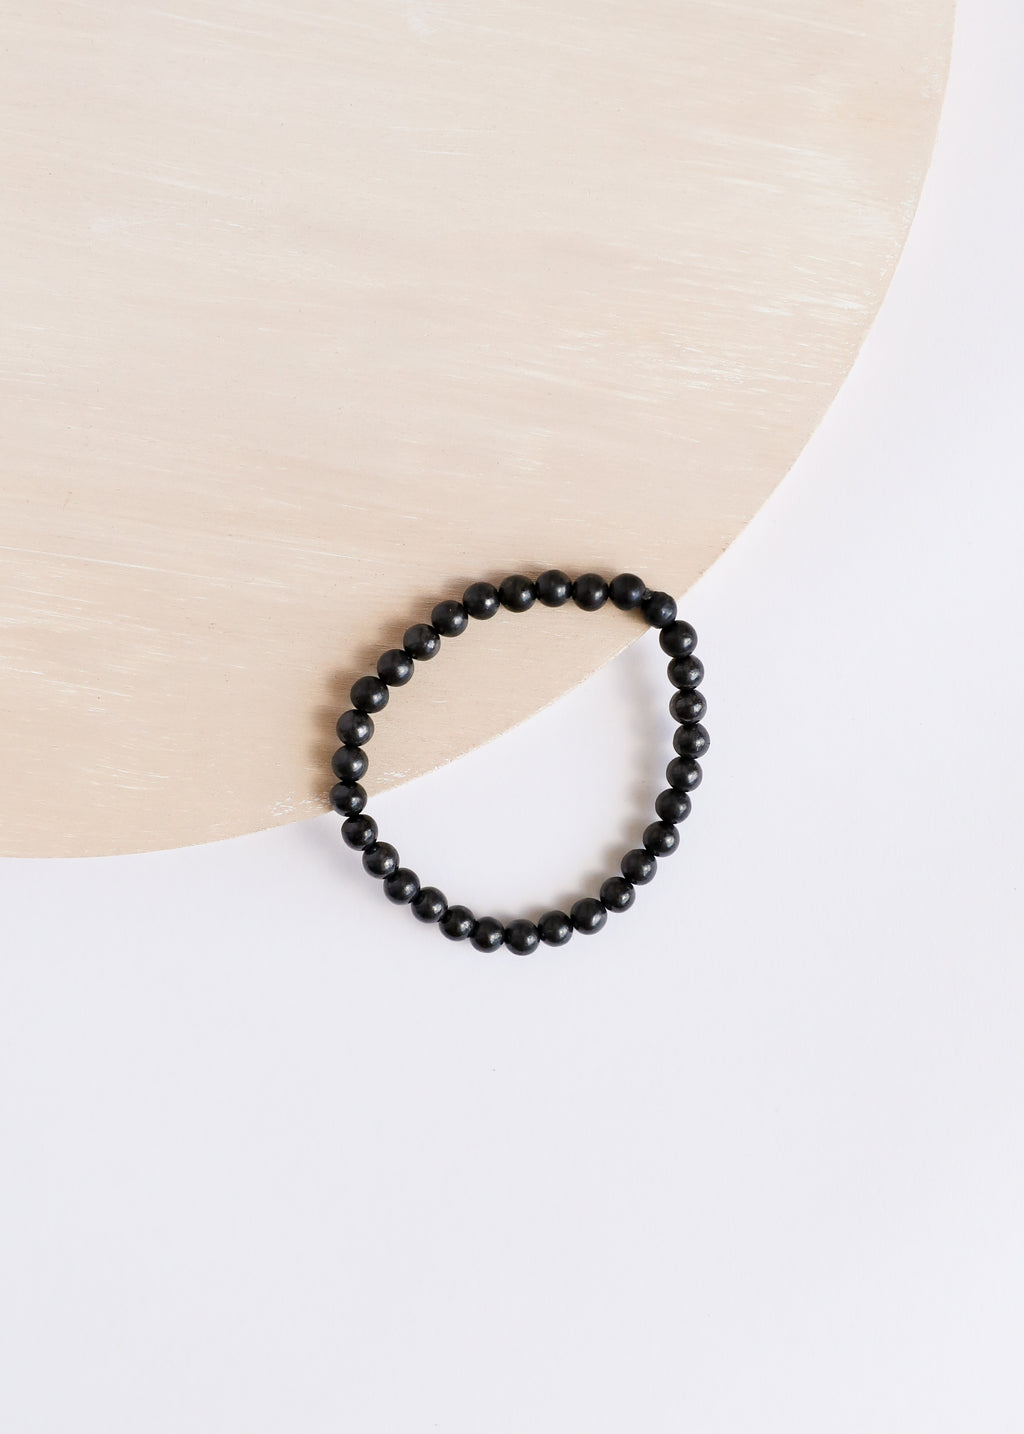 Raw Shungite || Adult Bracelet